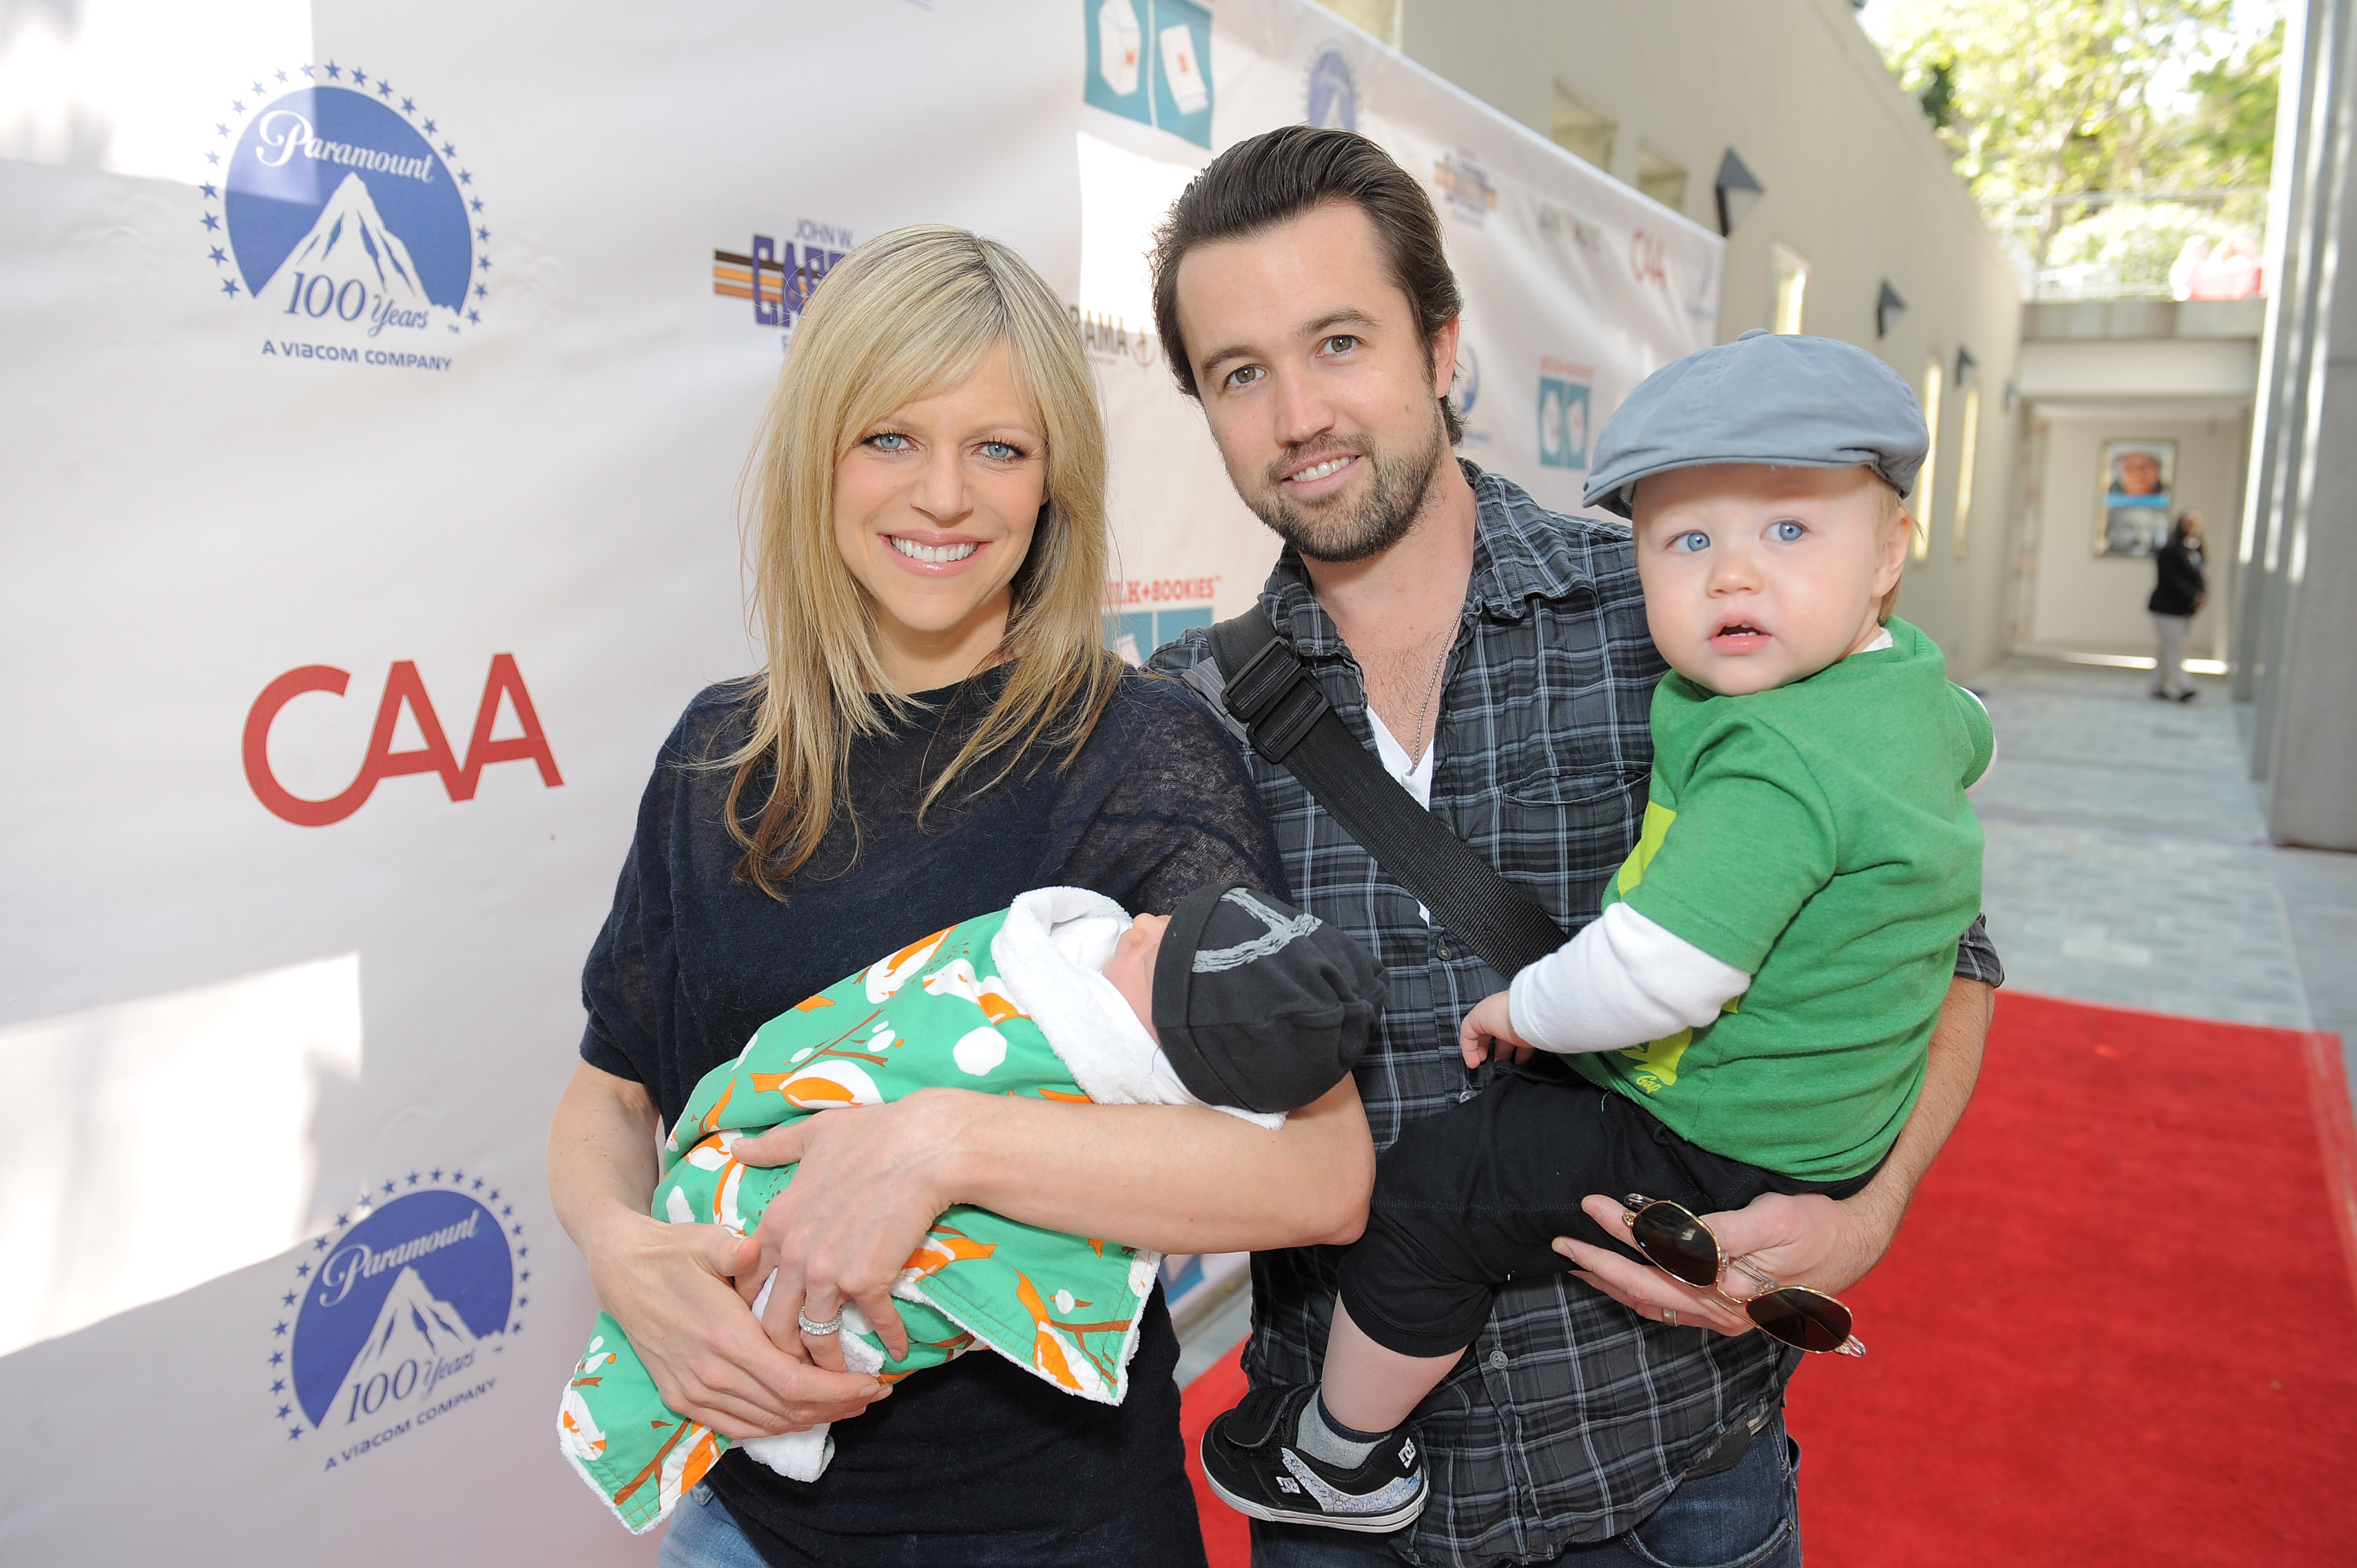 Kaitlin Olson And Rob McElhenney Brought Their Kids With Them To